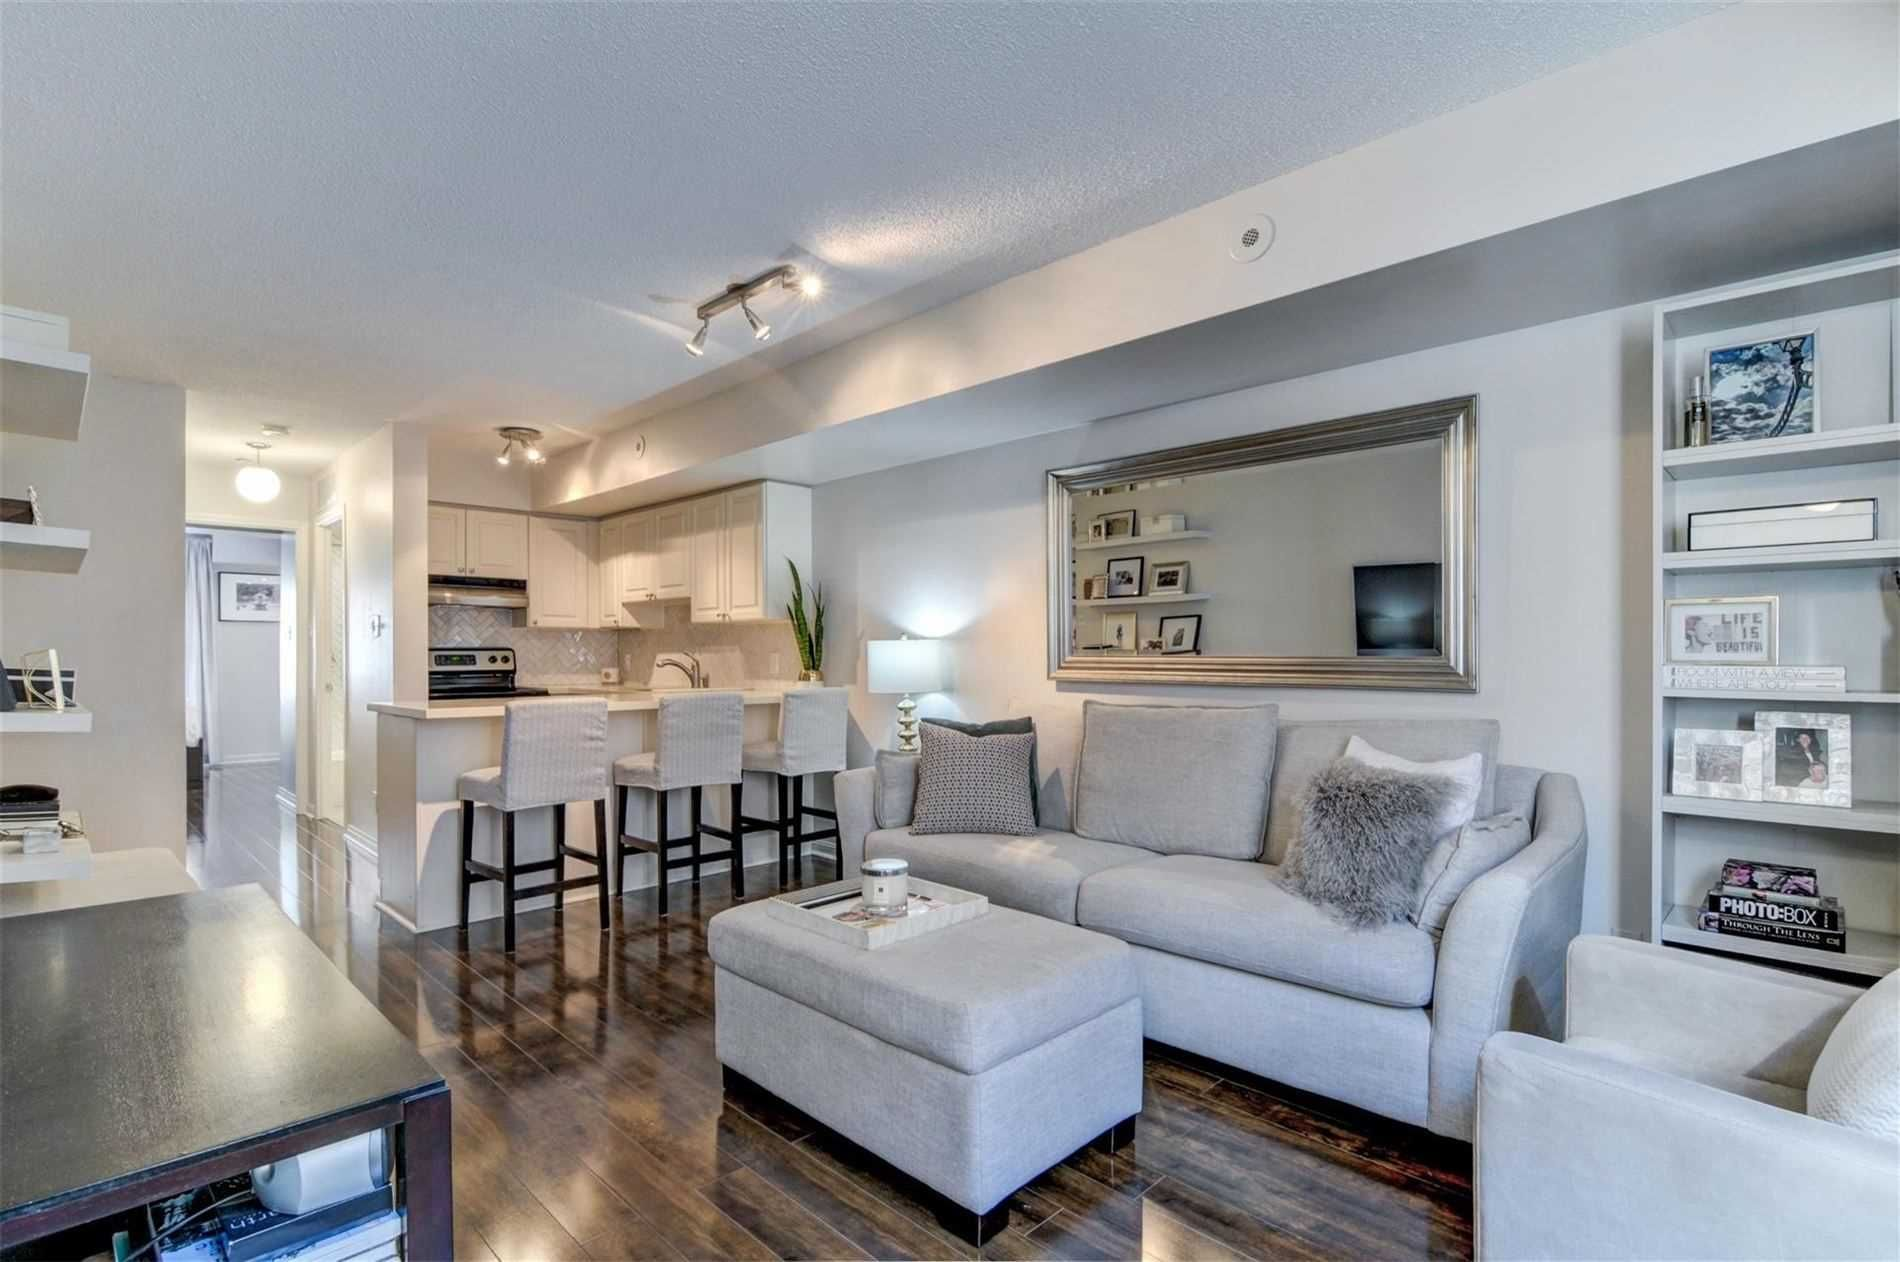 Main Photo: 514 27 Canniff Street in Toronto: Niagara Condo for sale (Toronto C01)  : MLS®# C4621351